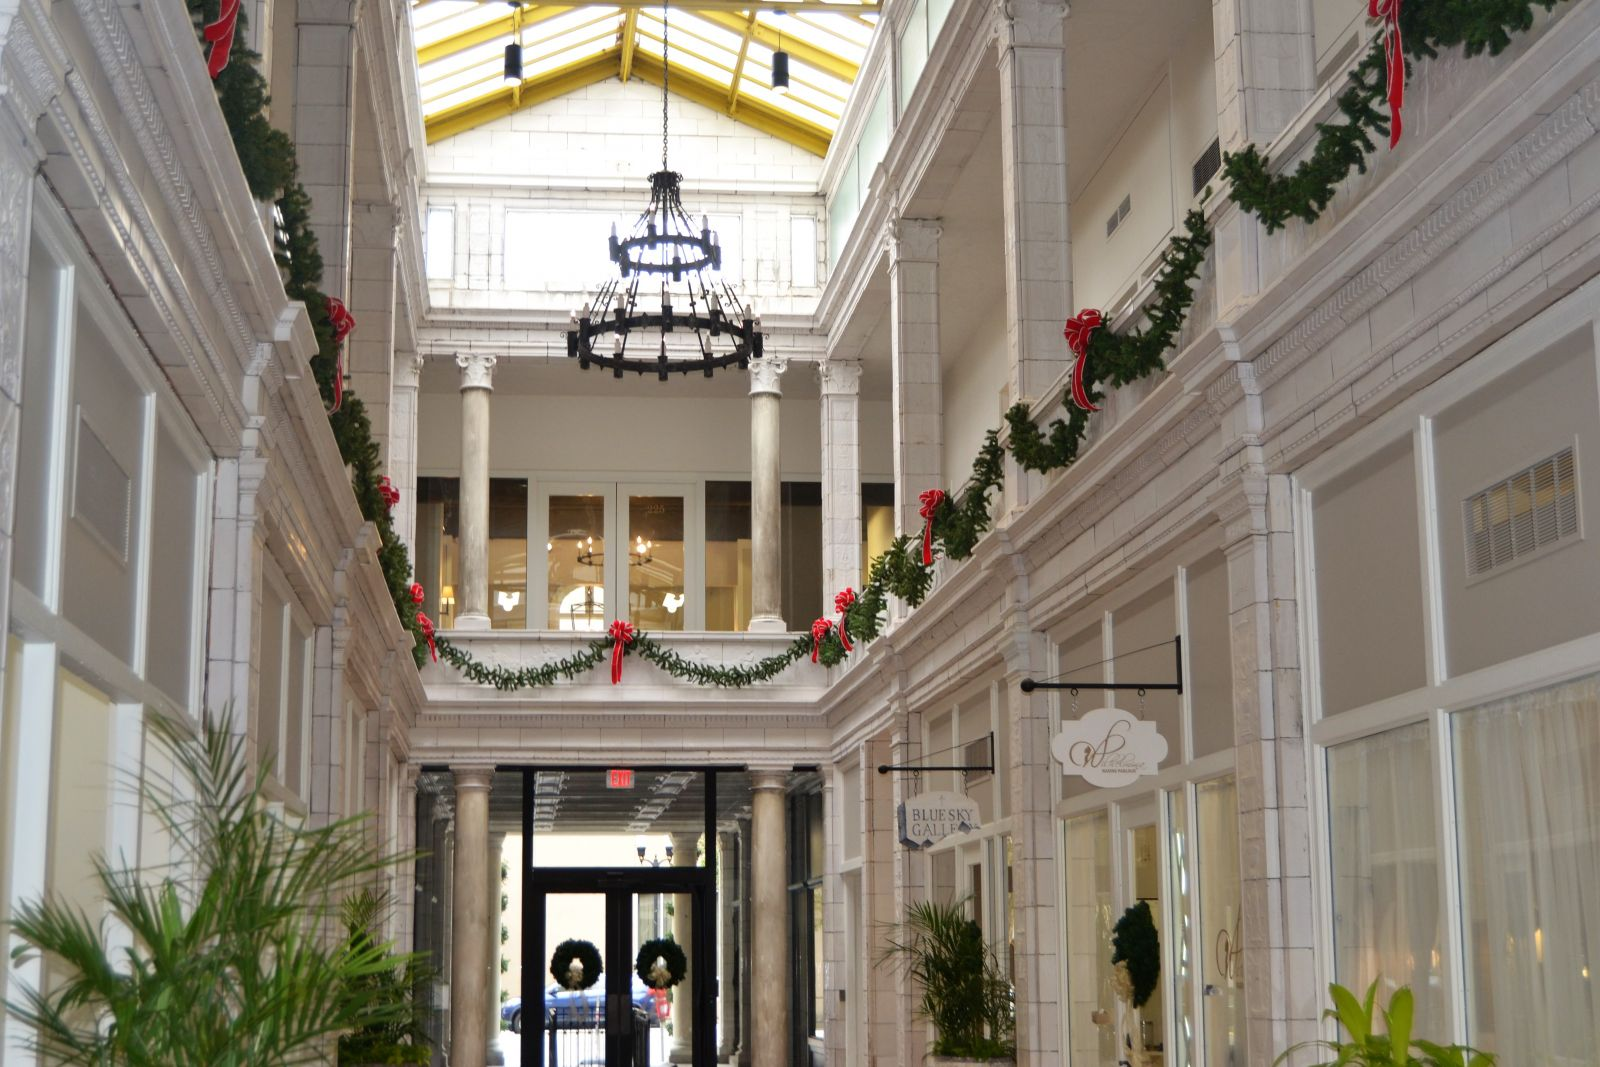 The Arcade Mall, decked out for the holidays, will hold a grand reopening to celebrate years of renovations today at 3 p.m. (Photo/Melinda Waldrop)